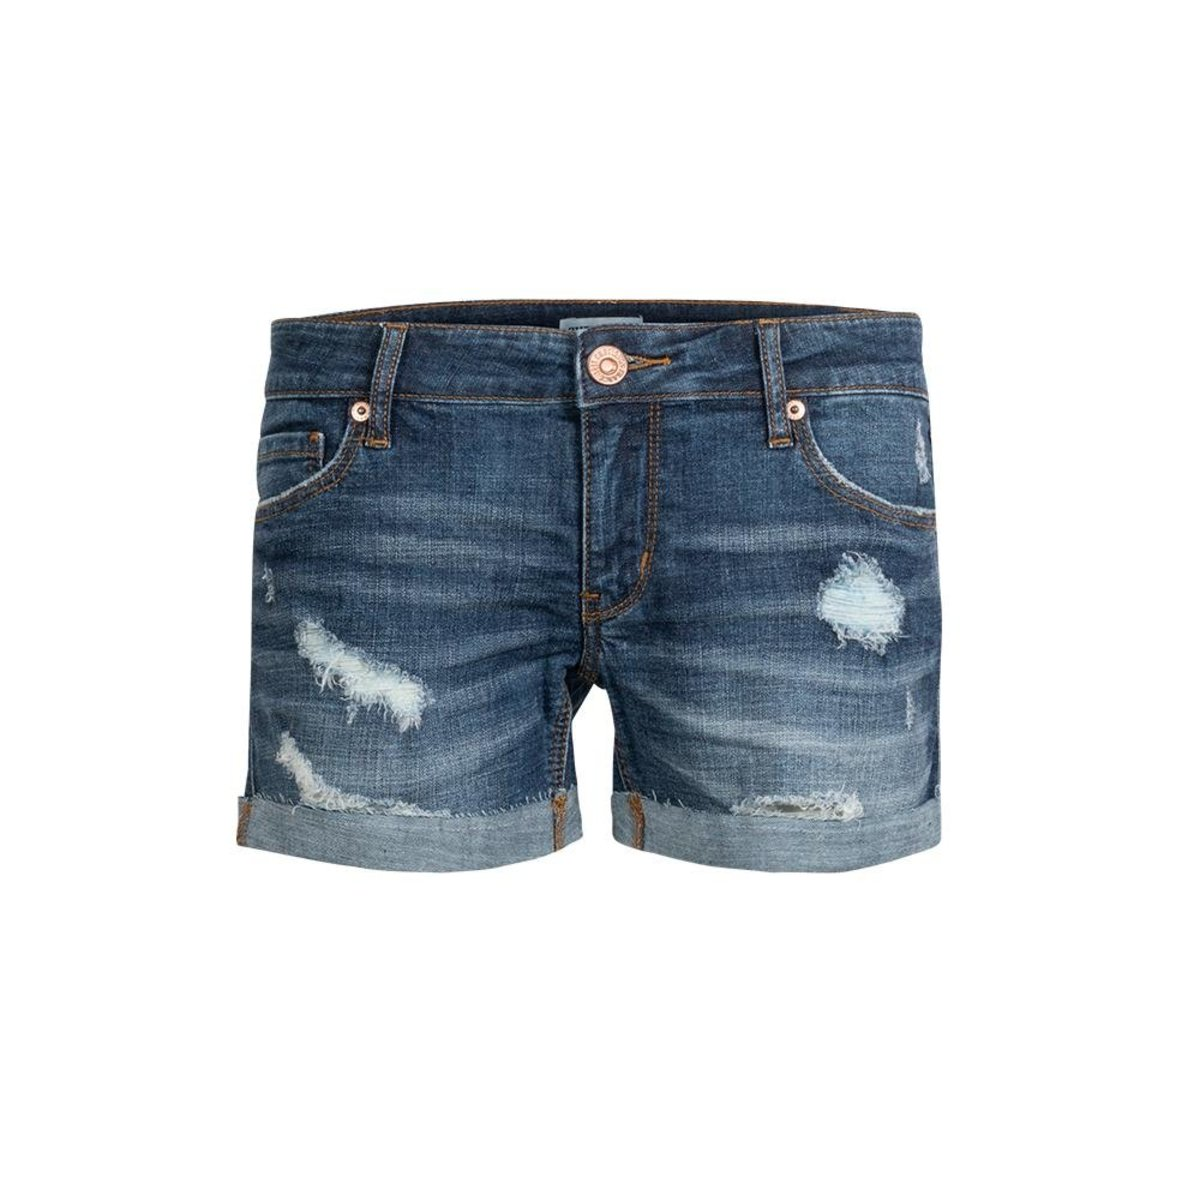 Ladies' Ripped Washed Denim Shorts